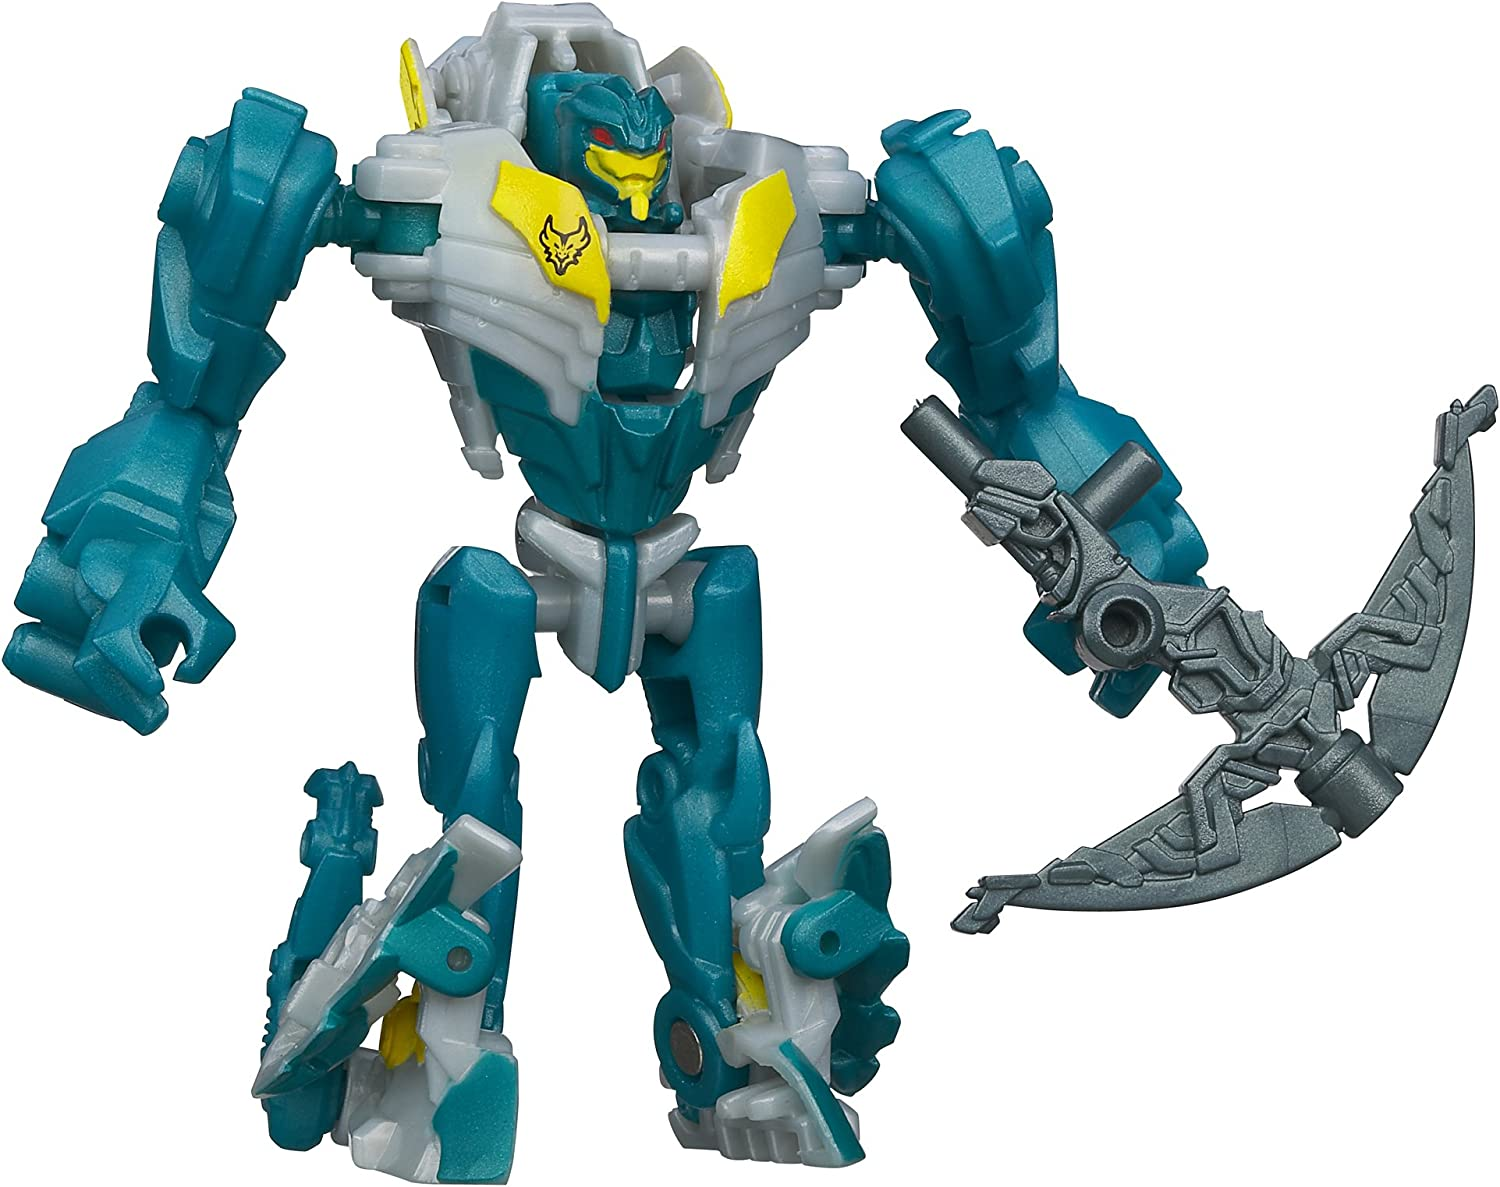 Transformers Prime Beast Hunters Legion Class Action Figure, Rippersnapper, 3 Inch